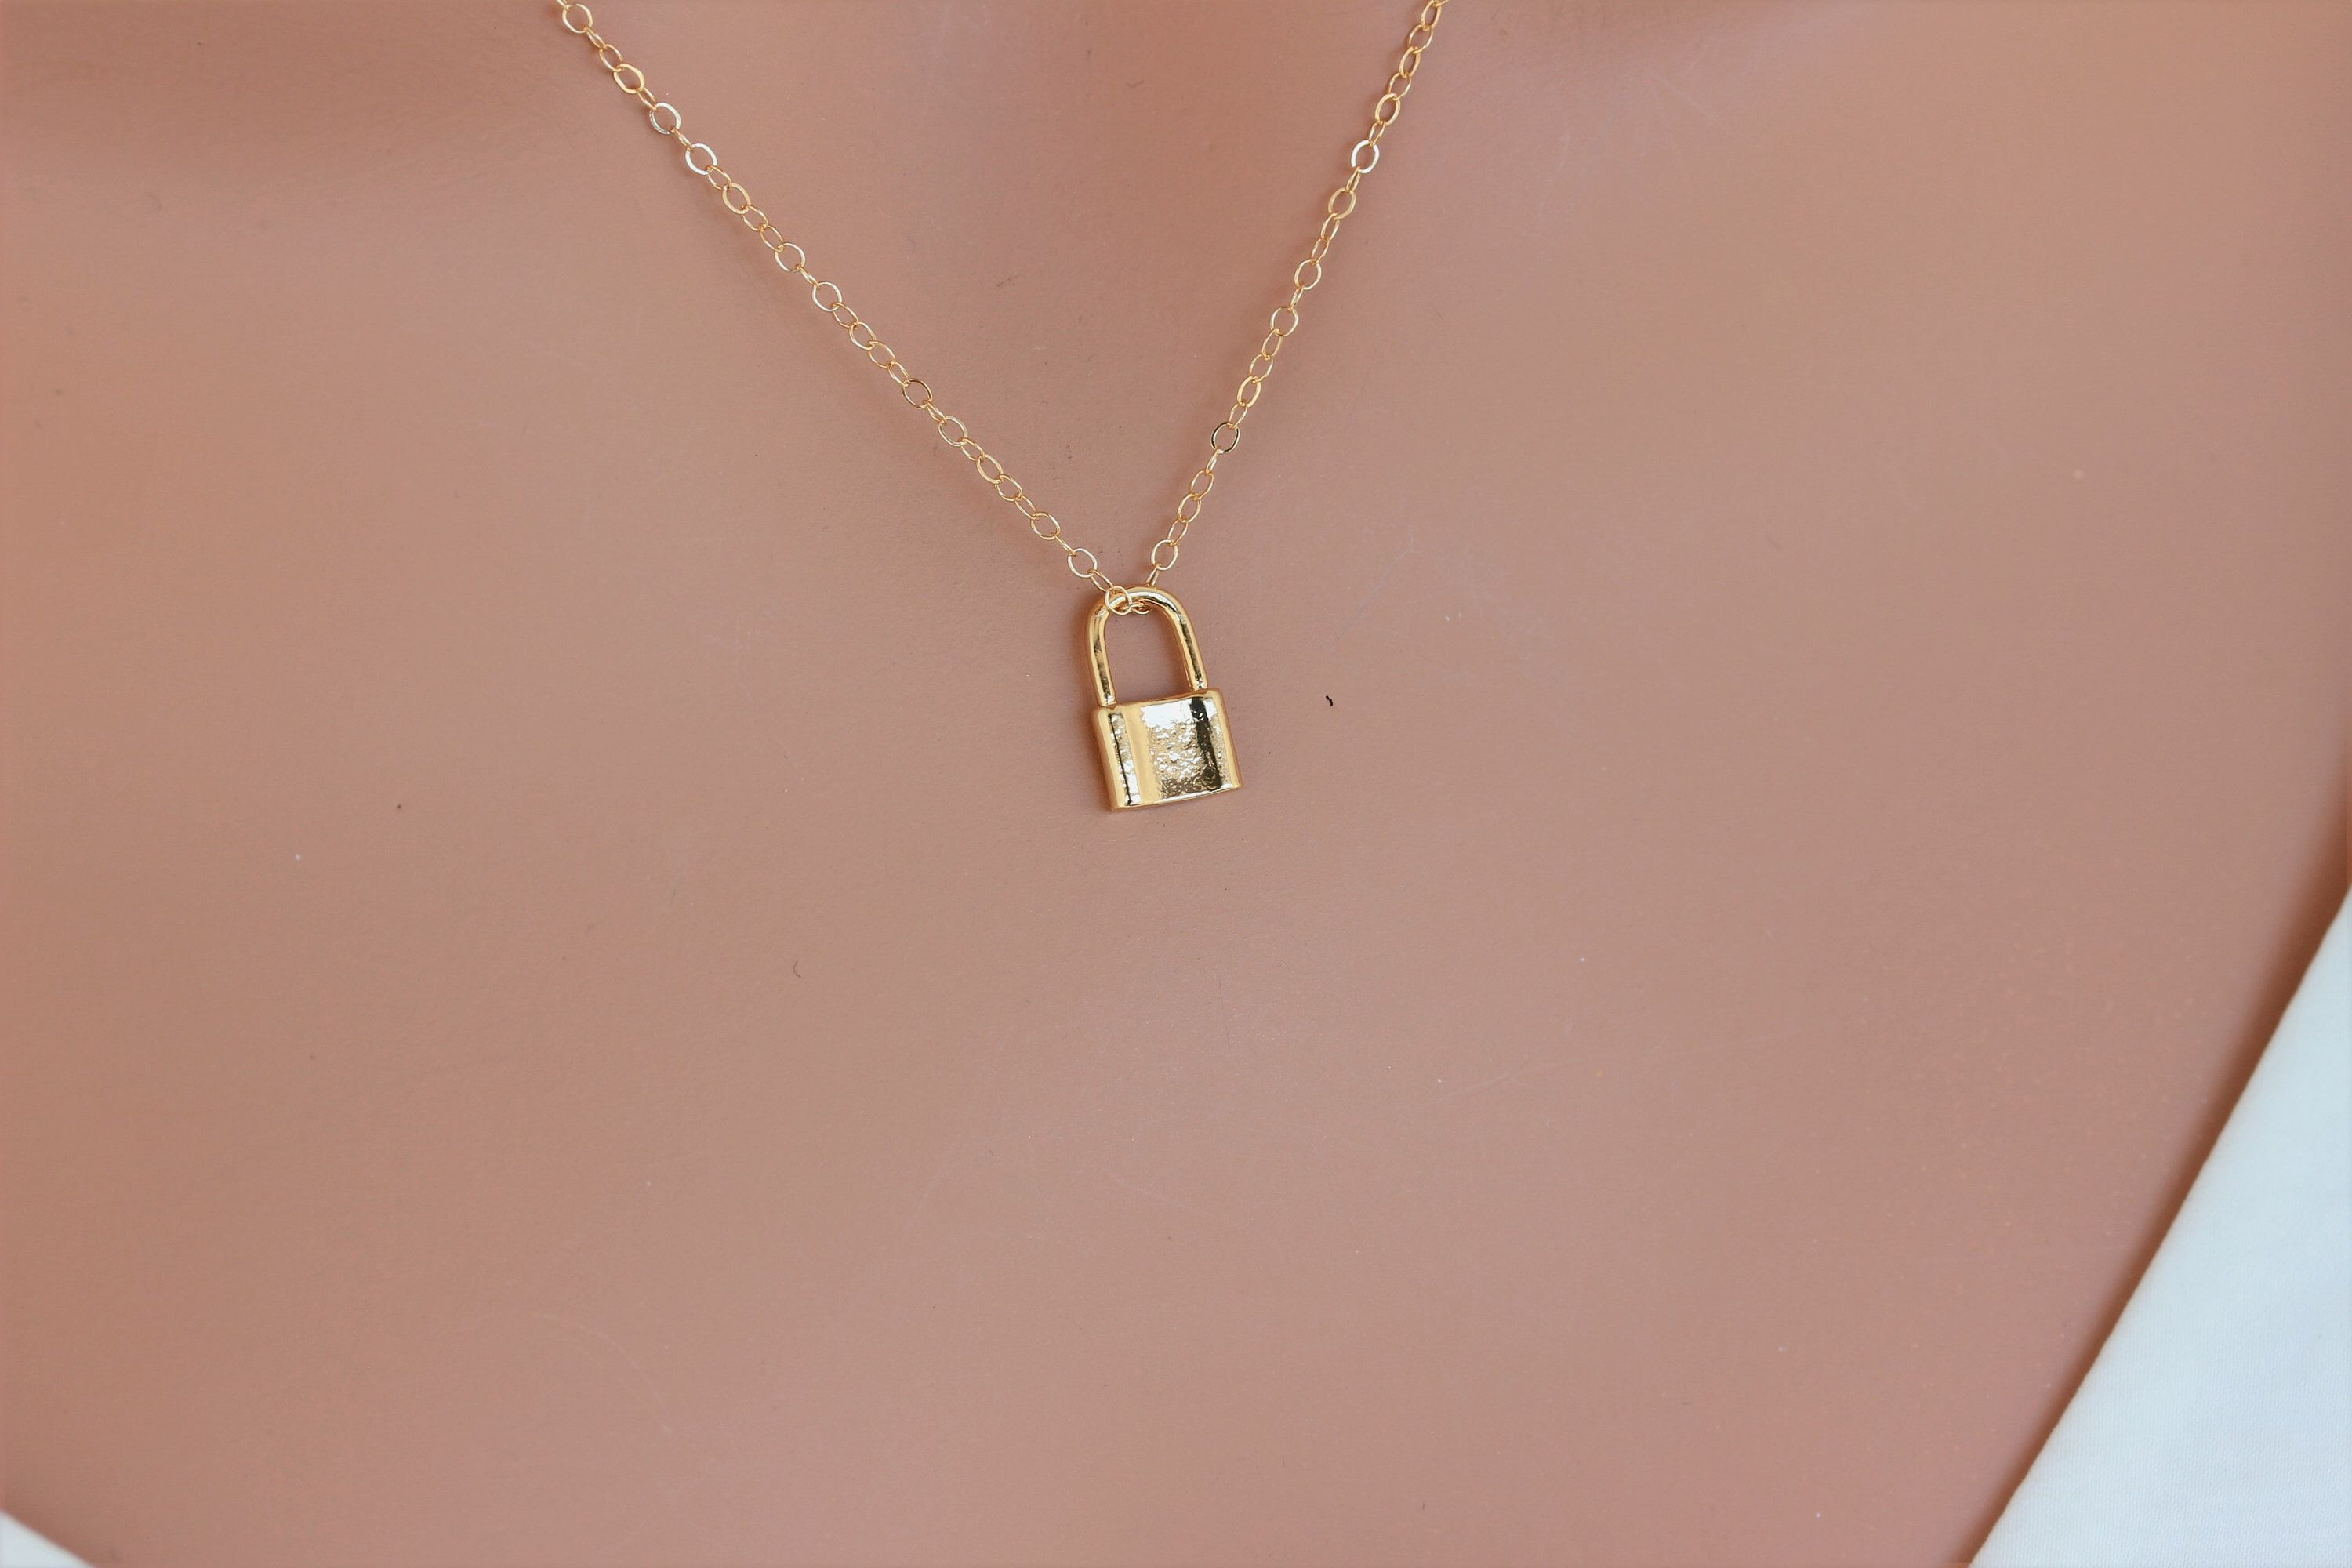 Gold Lock Necklace Tiny Lock Necklace Lock Layering Etsy In 2021 Lock Necklace Padlock Necklace 14k Gold Filled Necklace